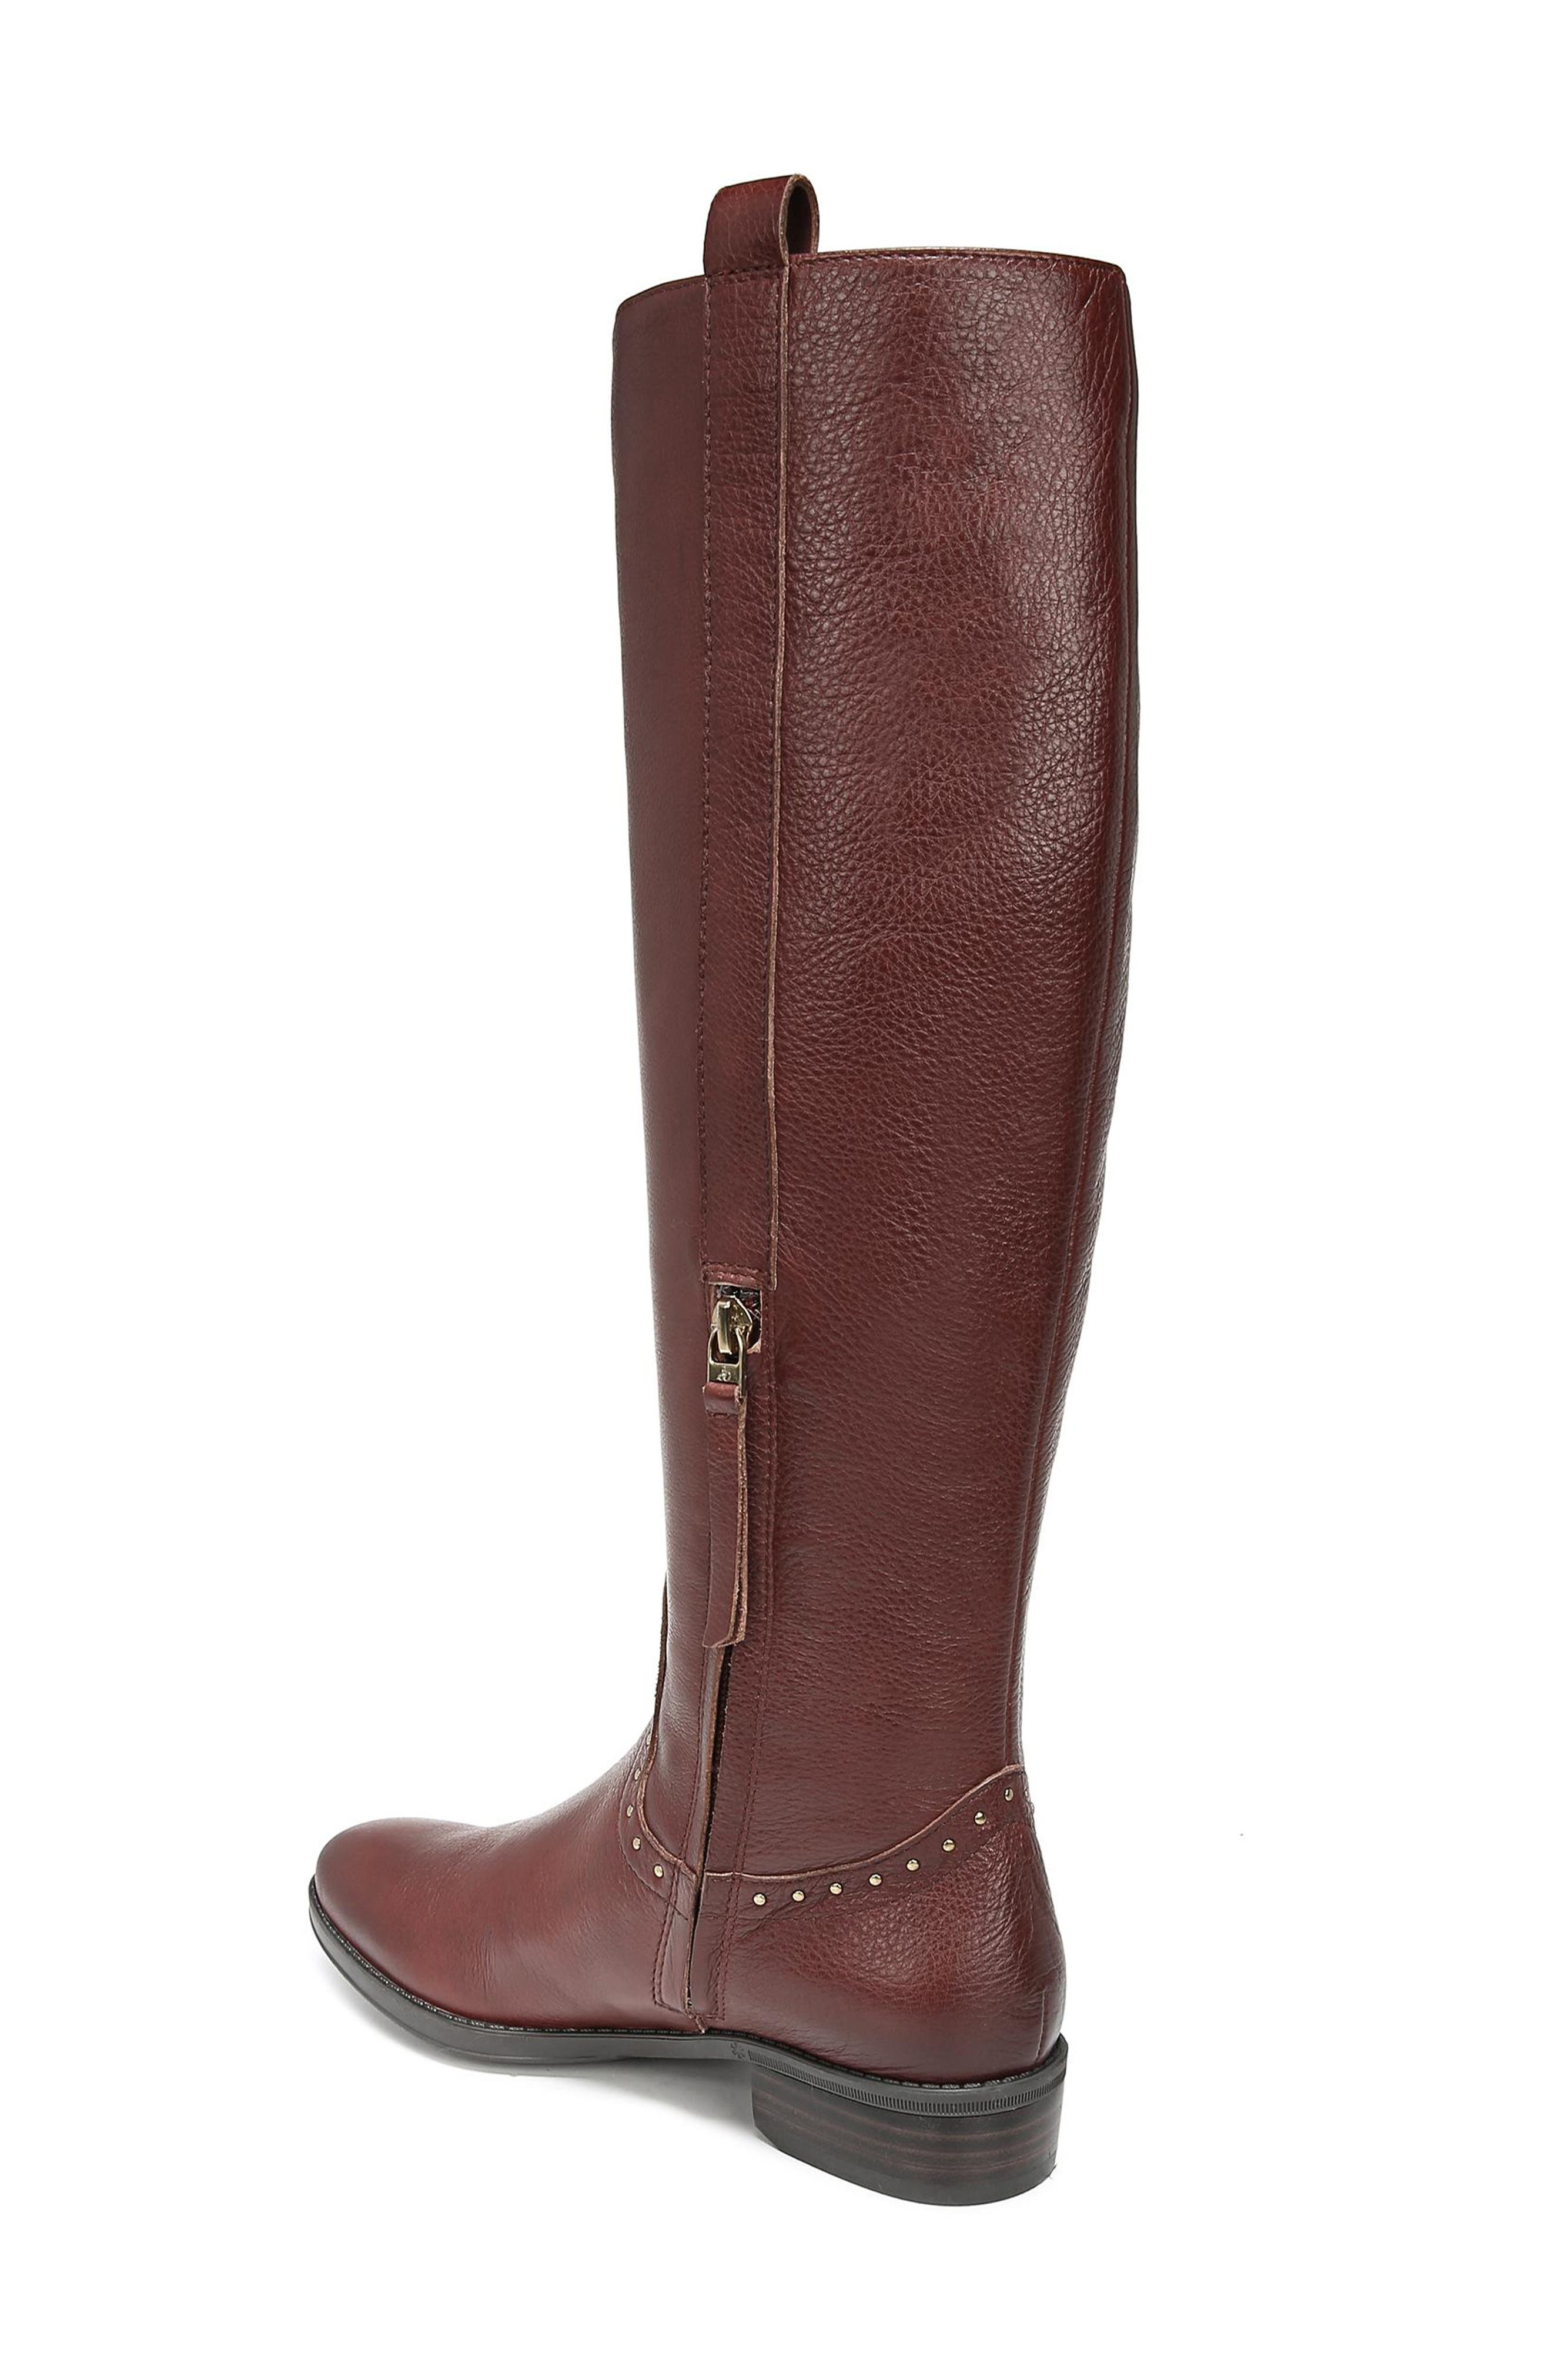 Prina Riding Boot,                             Alternate thumbnail 2, color,                             REDWOOD BROWN LEATHER